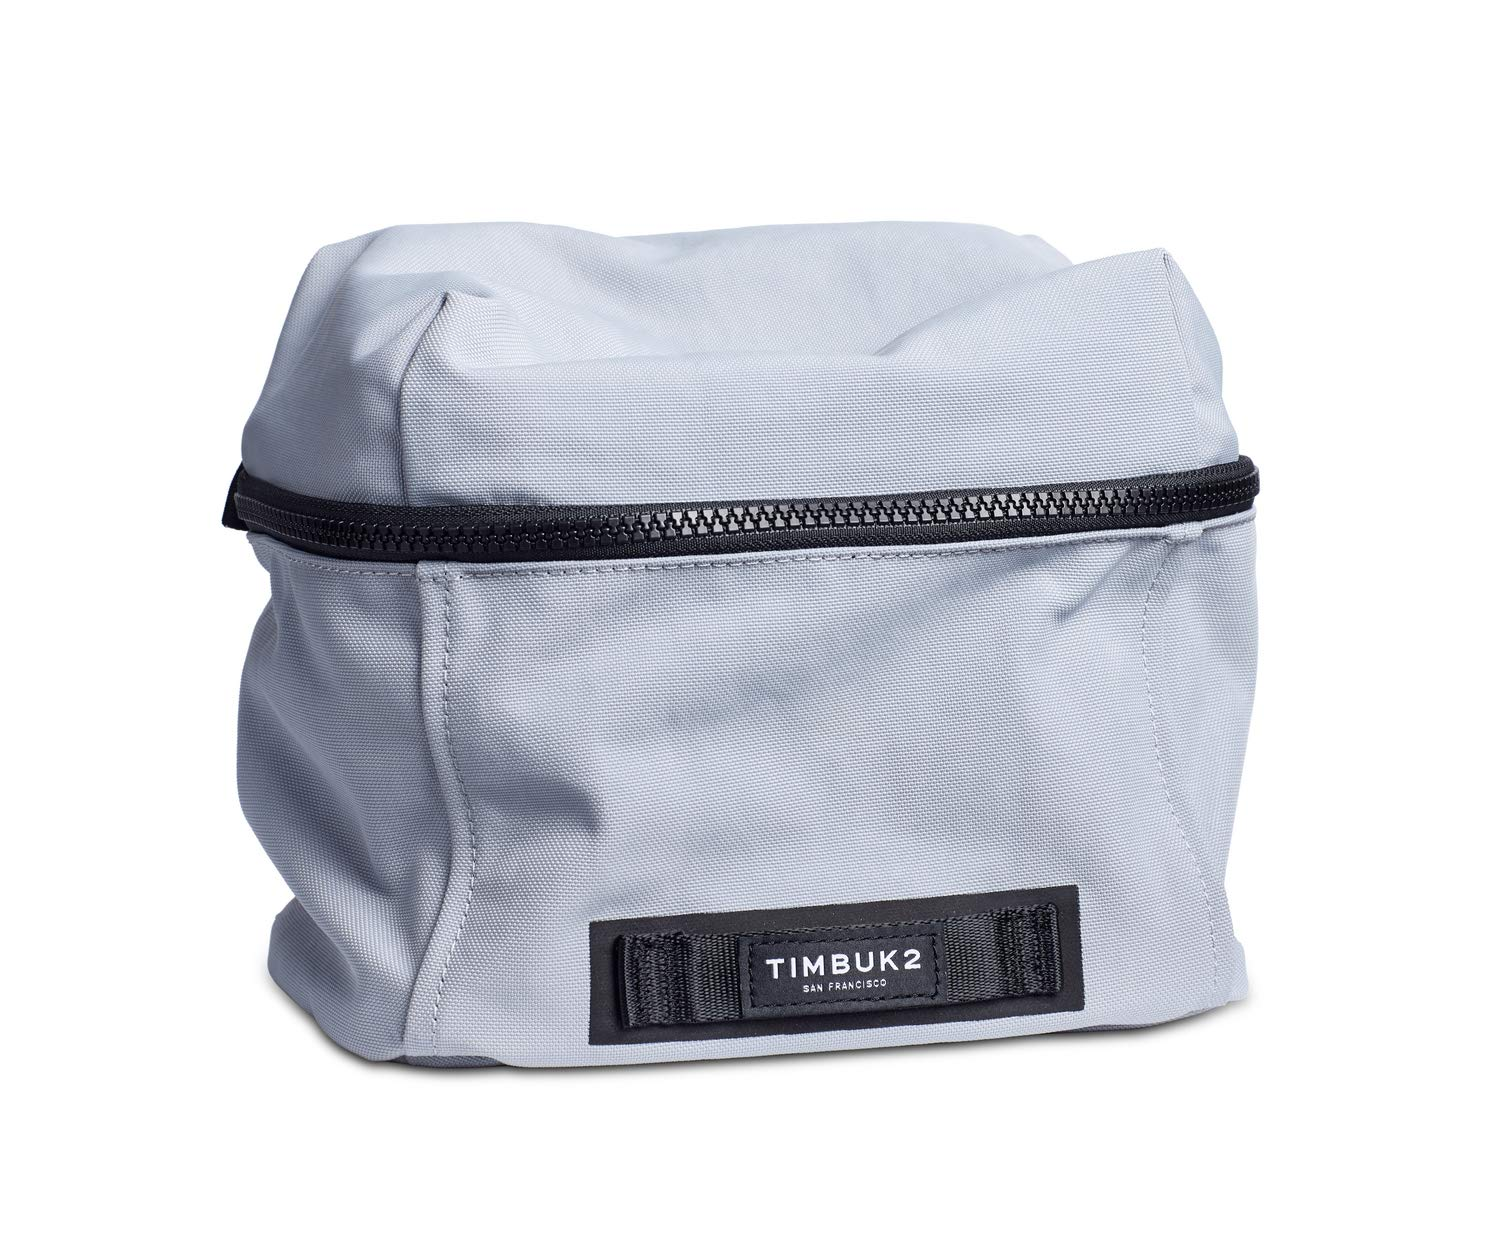 Timbuk2 Essentials Hanging Toiletry Kit, Atmosphere Lug, Small by Timbuk2